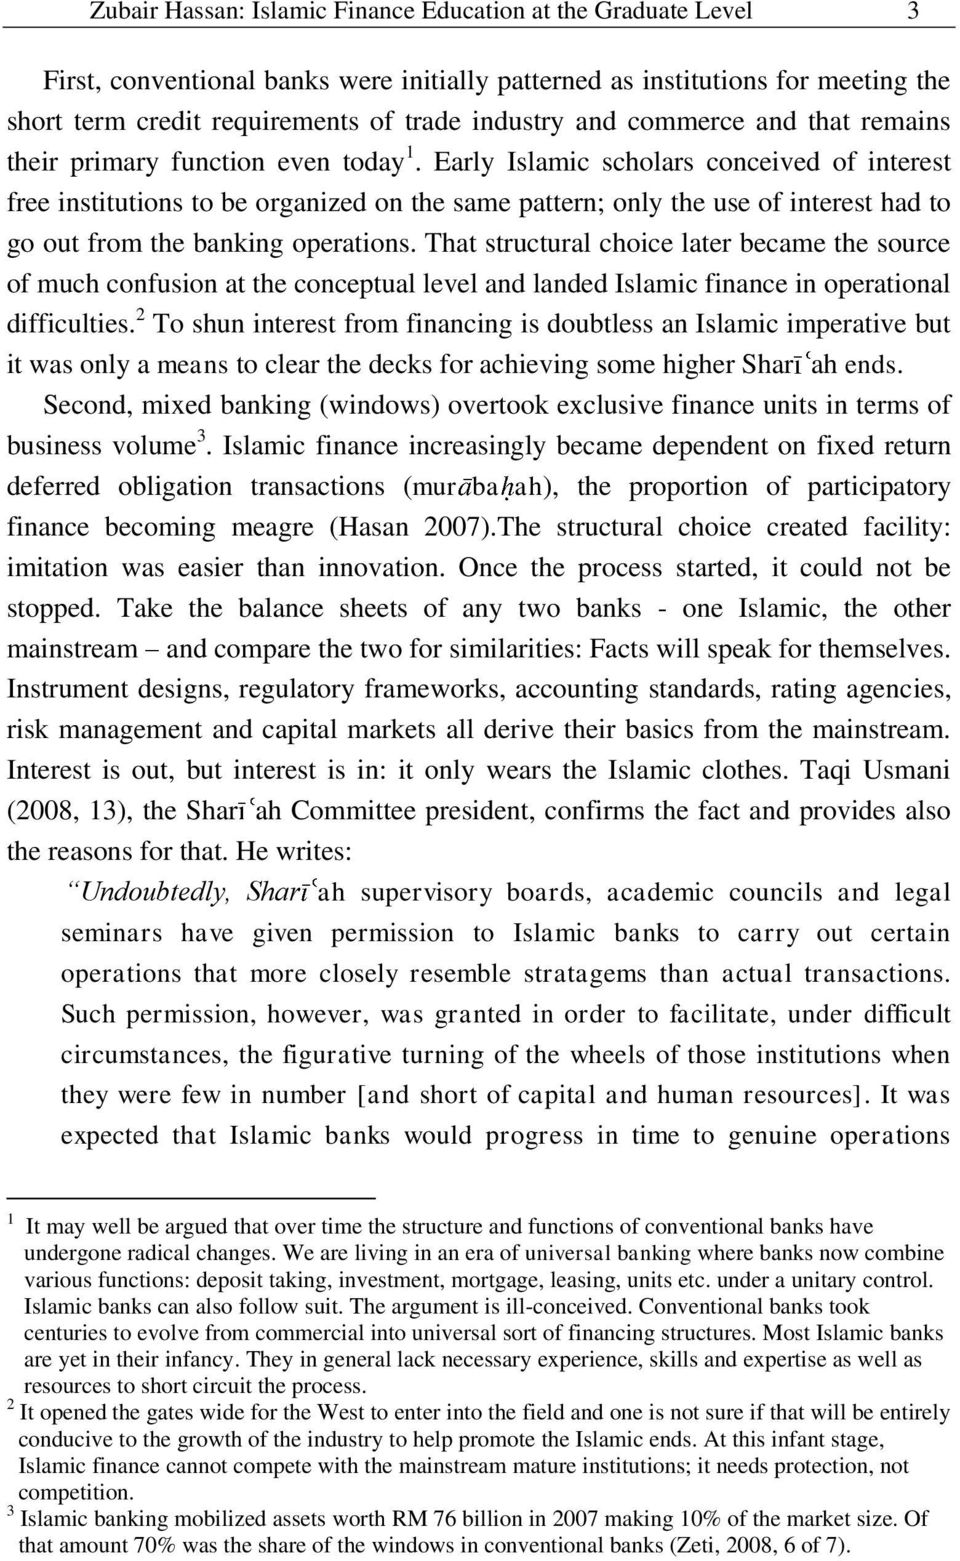 Early Islamic scholars conceived of interest free institutions to be organized on the same pattern; only the use of interest had to go out from the banking operations.